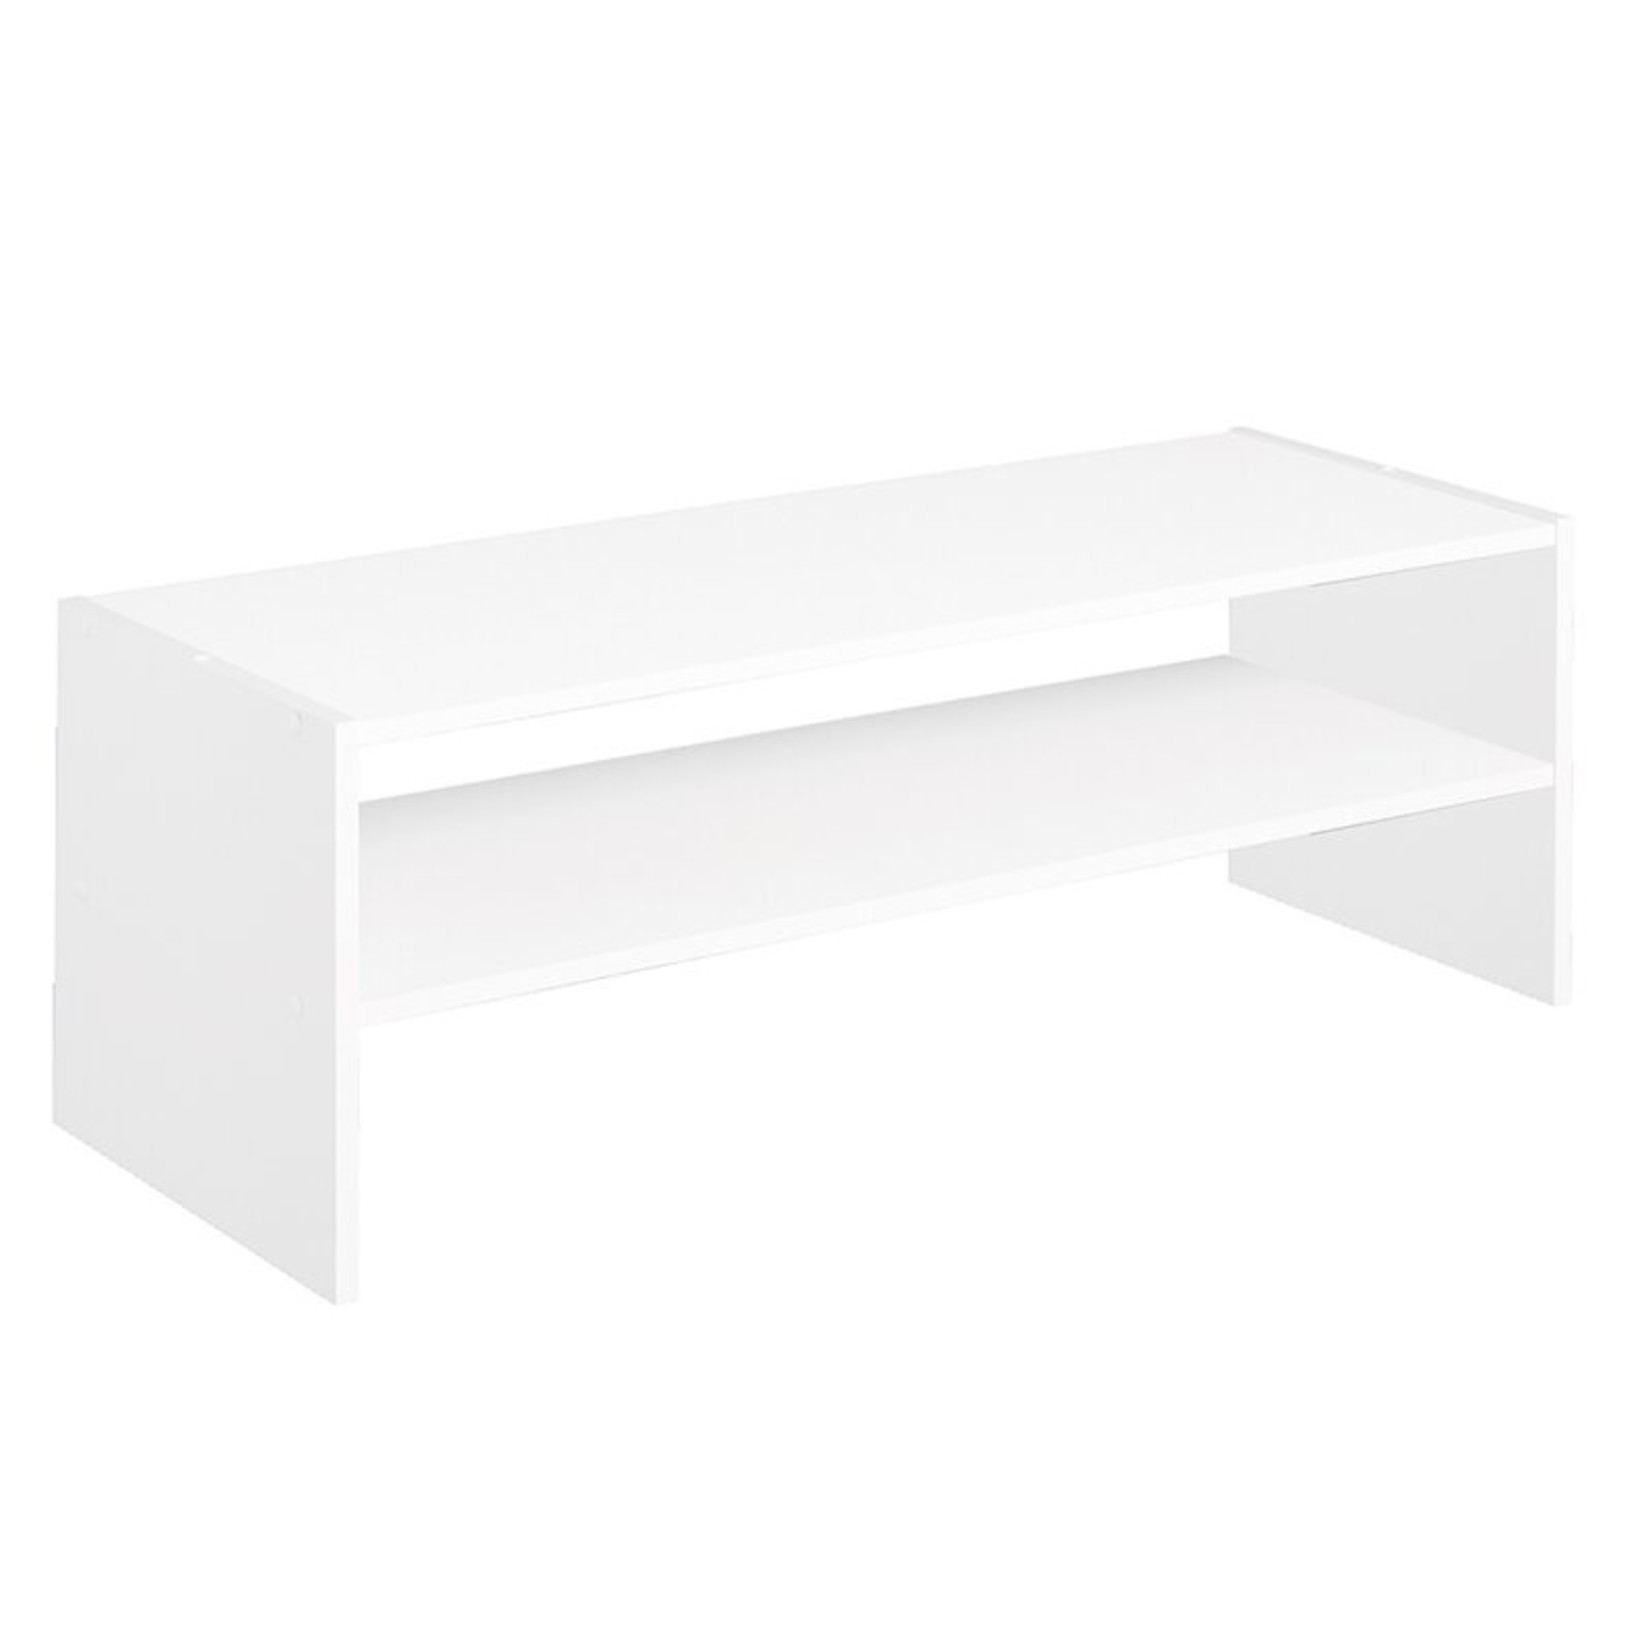 *6 Pair Stackable Shoe Rack - White